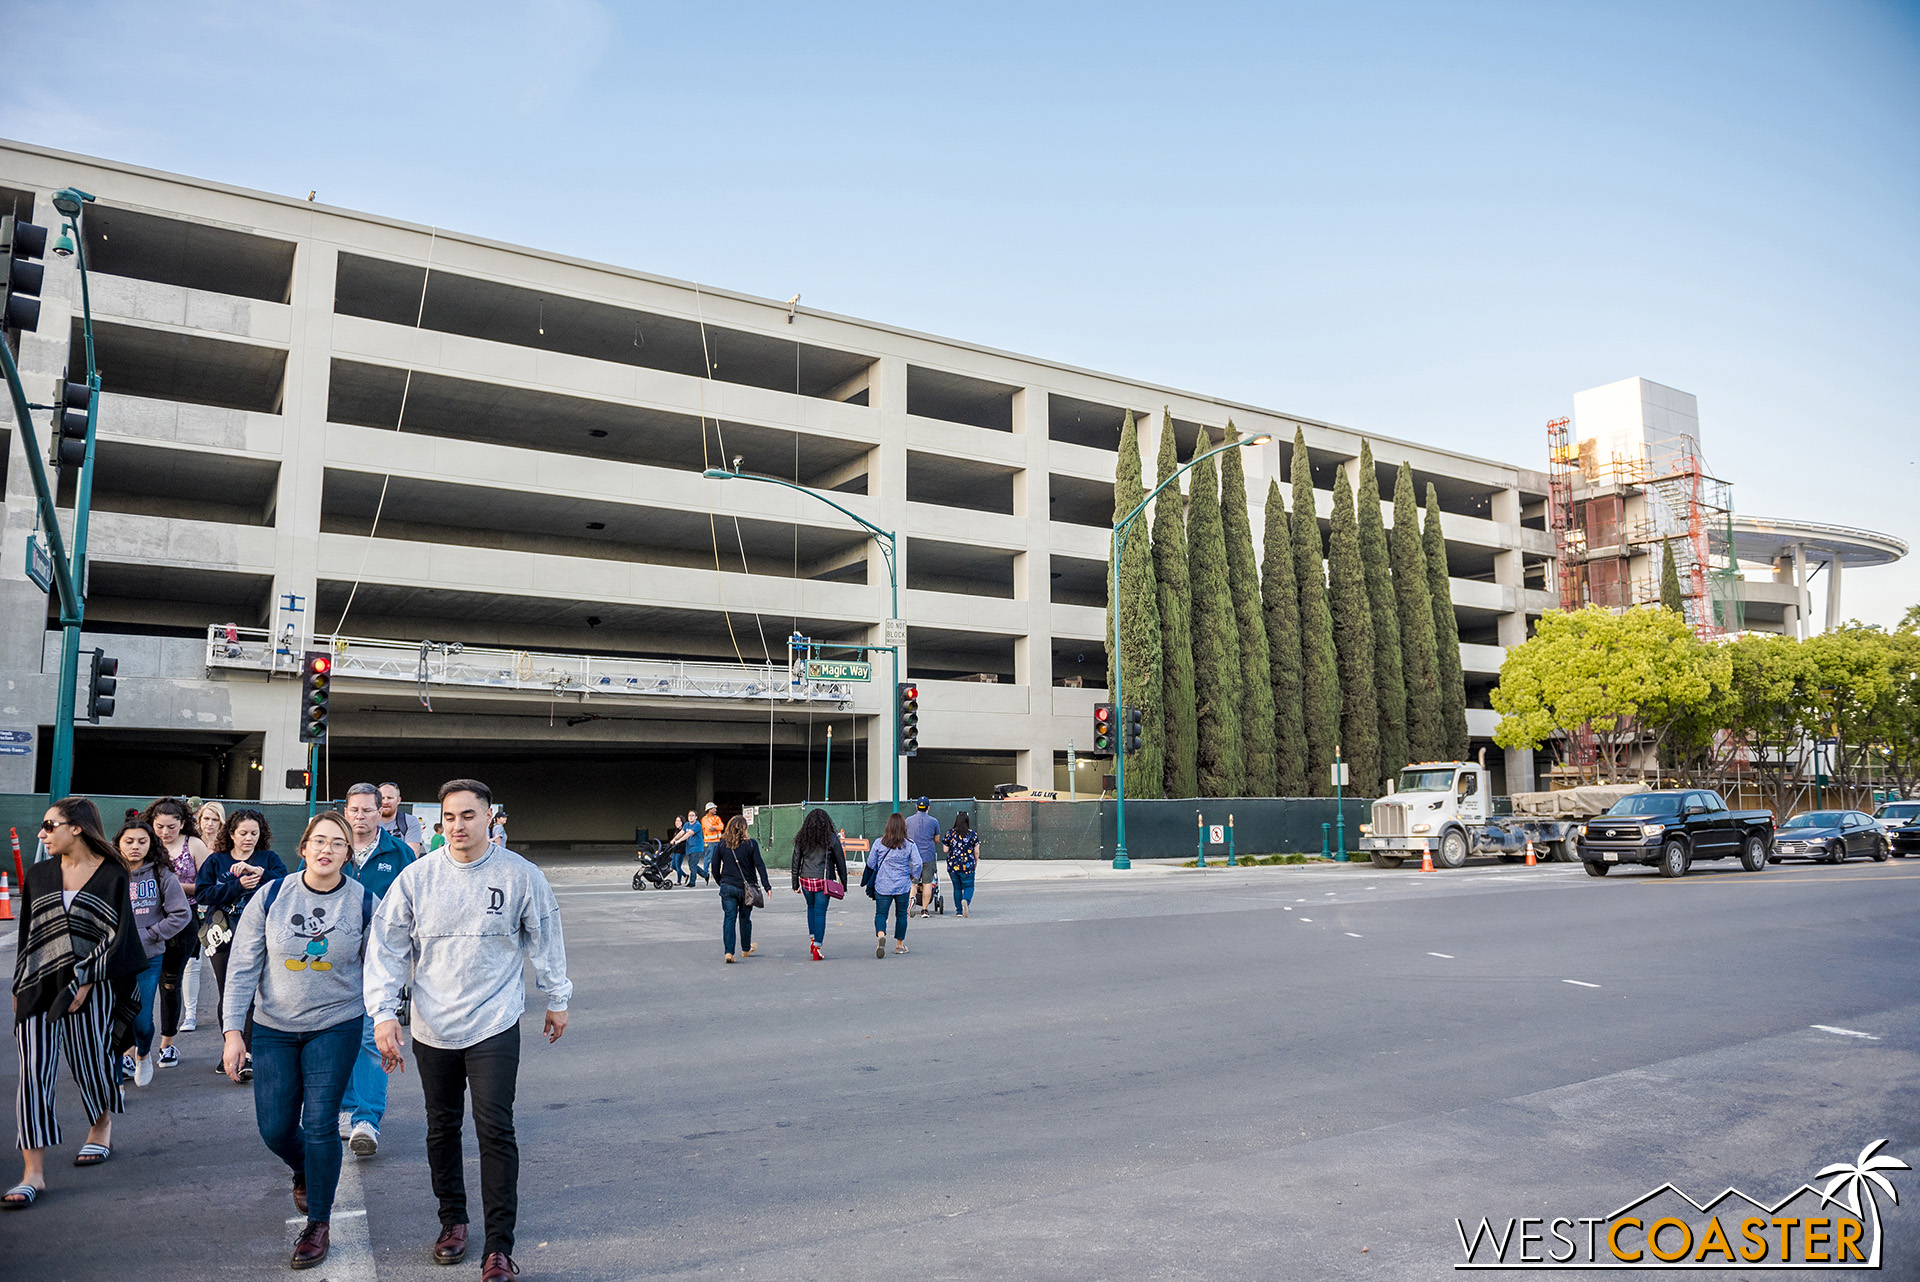 But a parking structure is better than none, so can't wait to see this open!